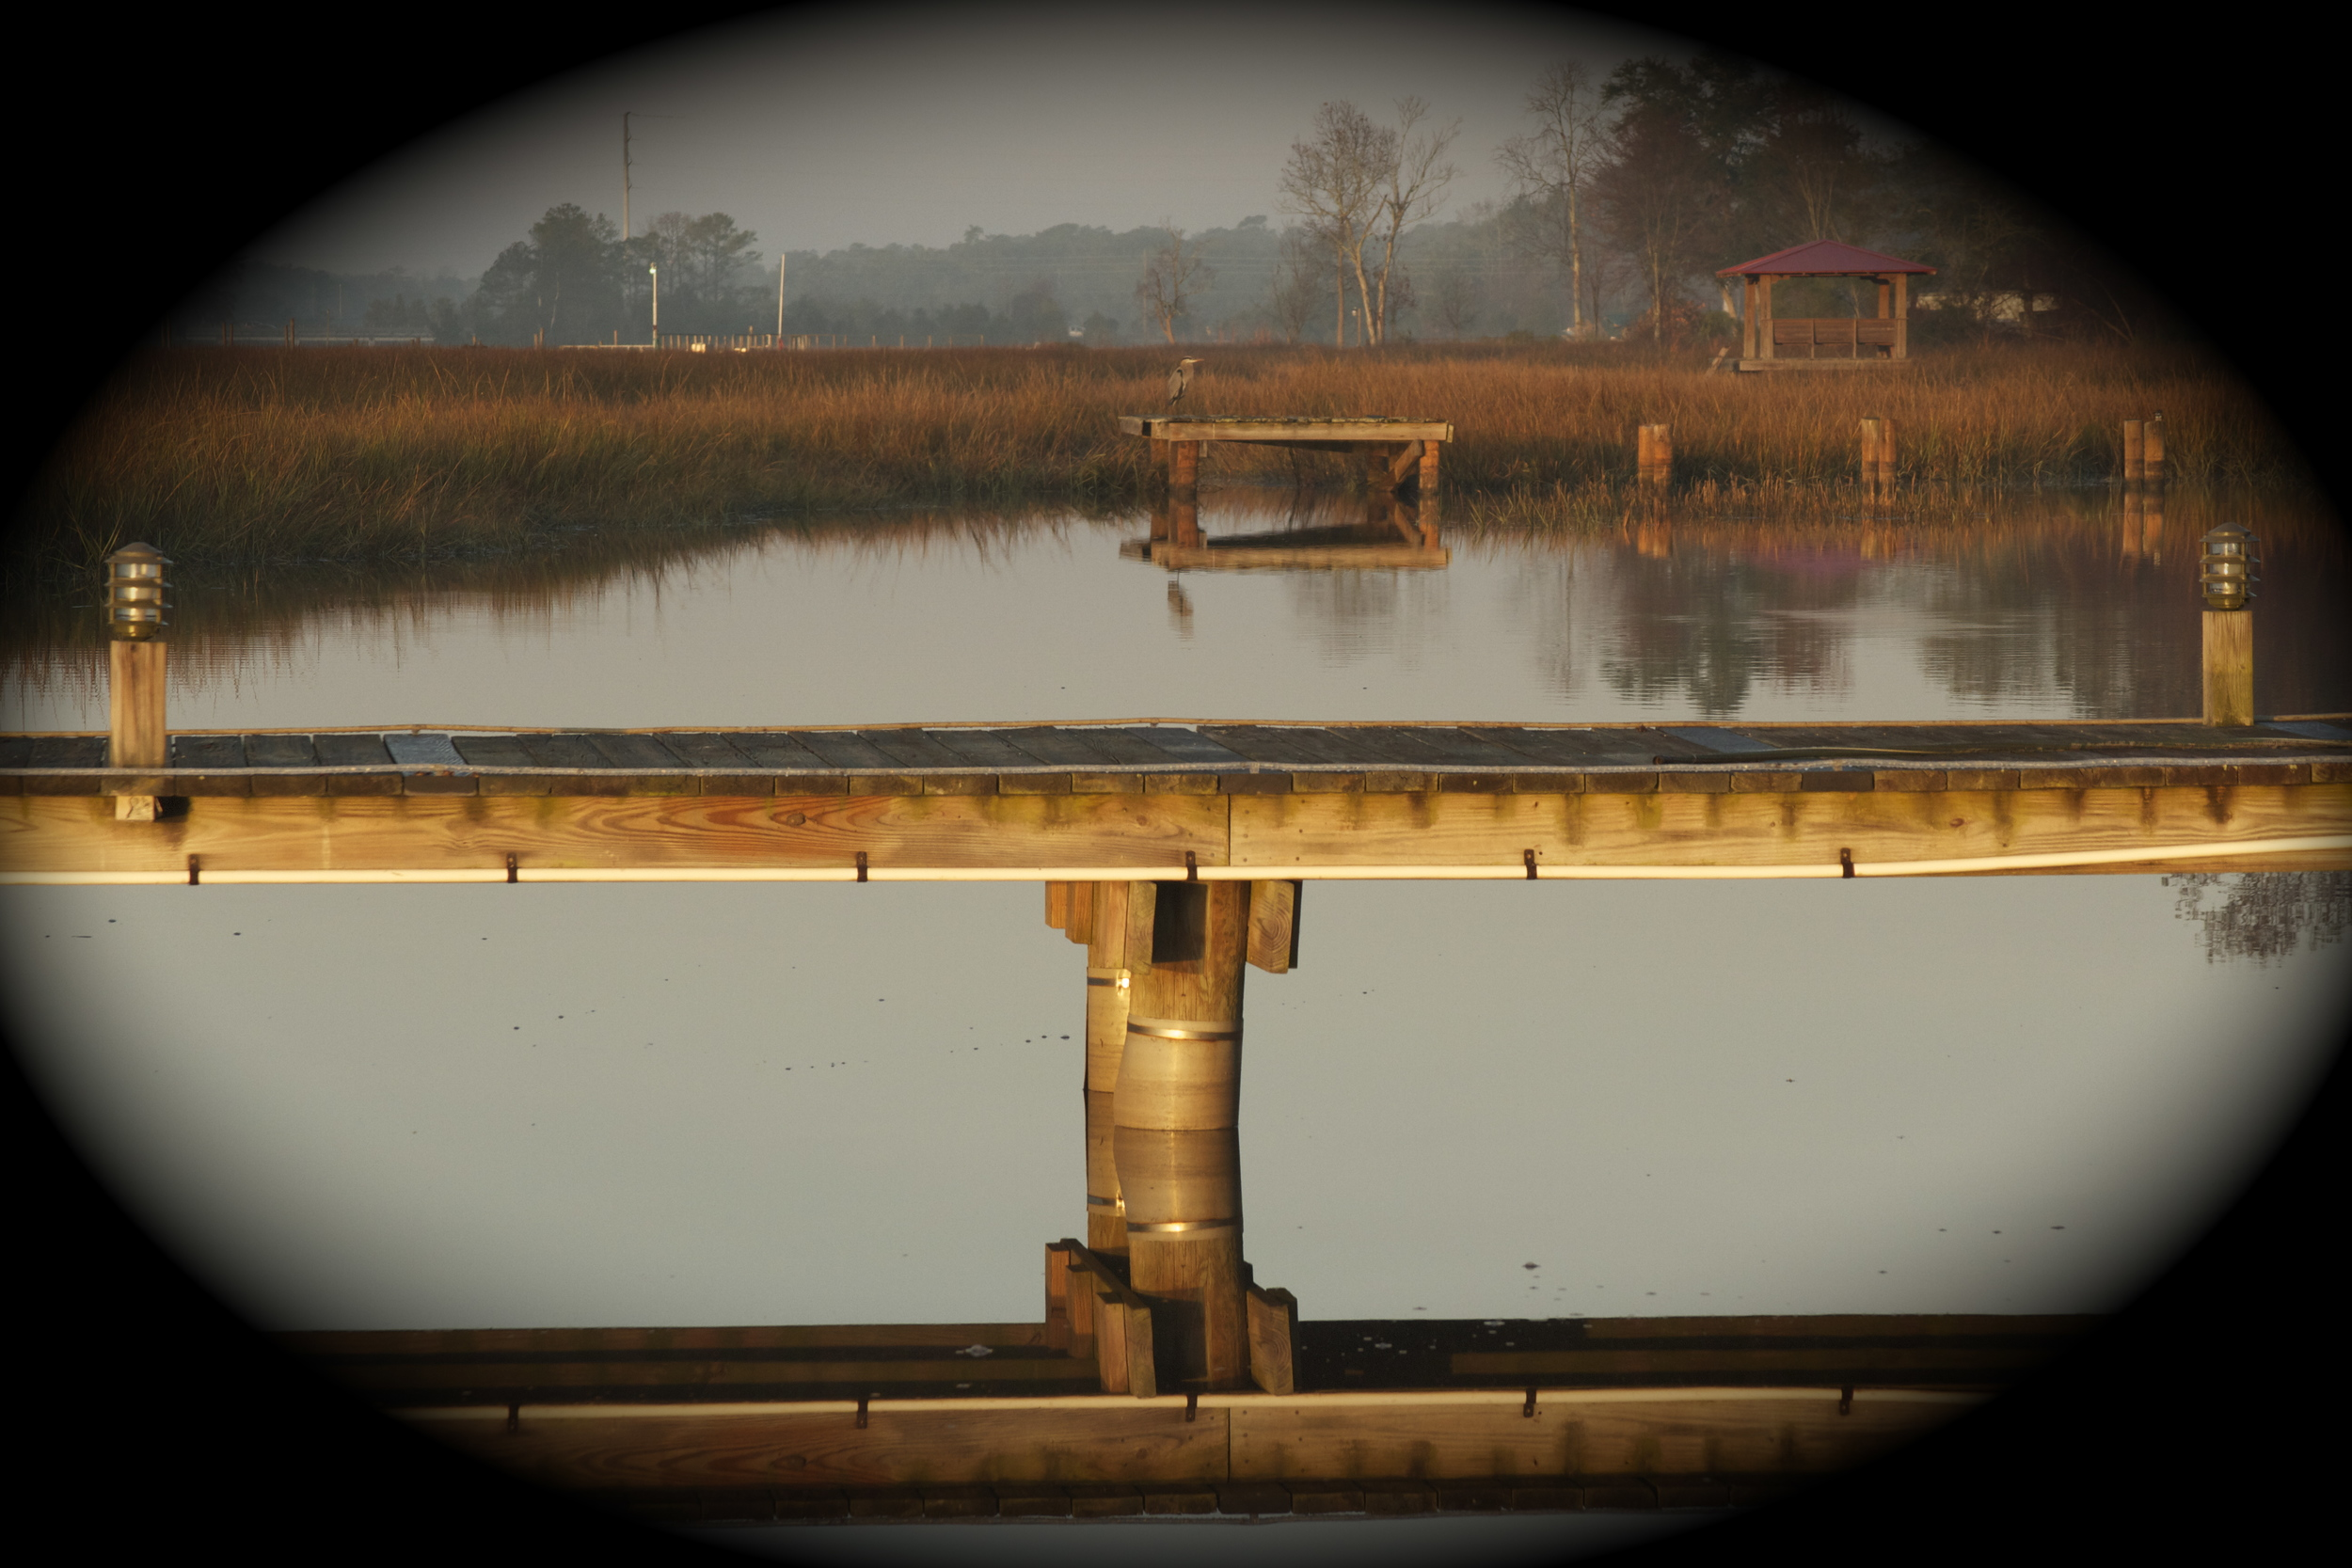 The Golden Glow arrives and is reflected on the marsh. Old Man River waits as usual.